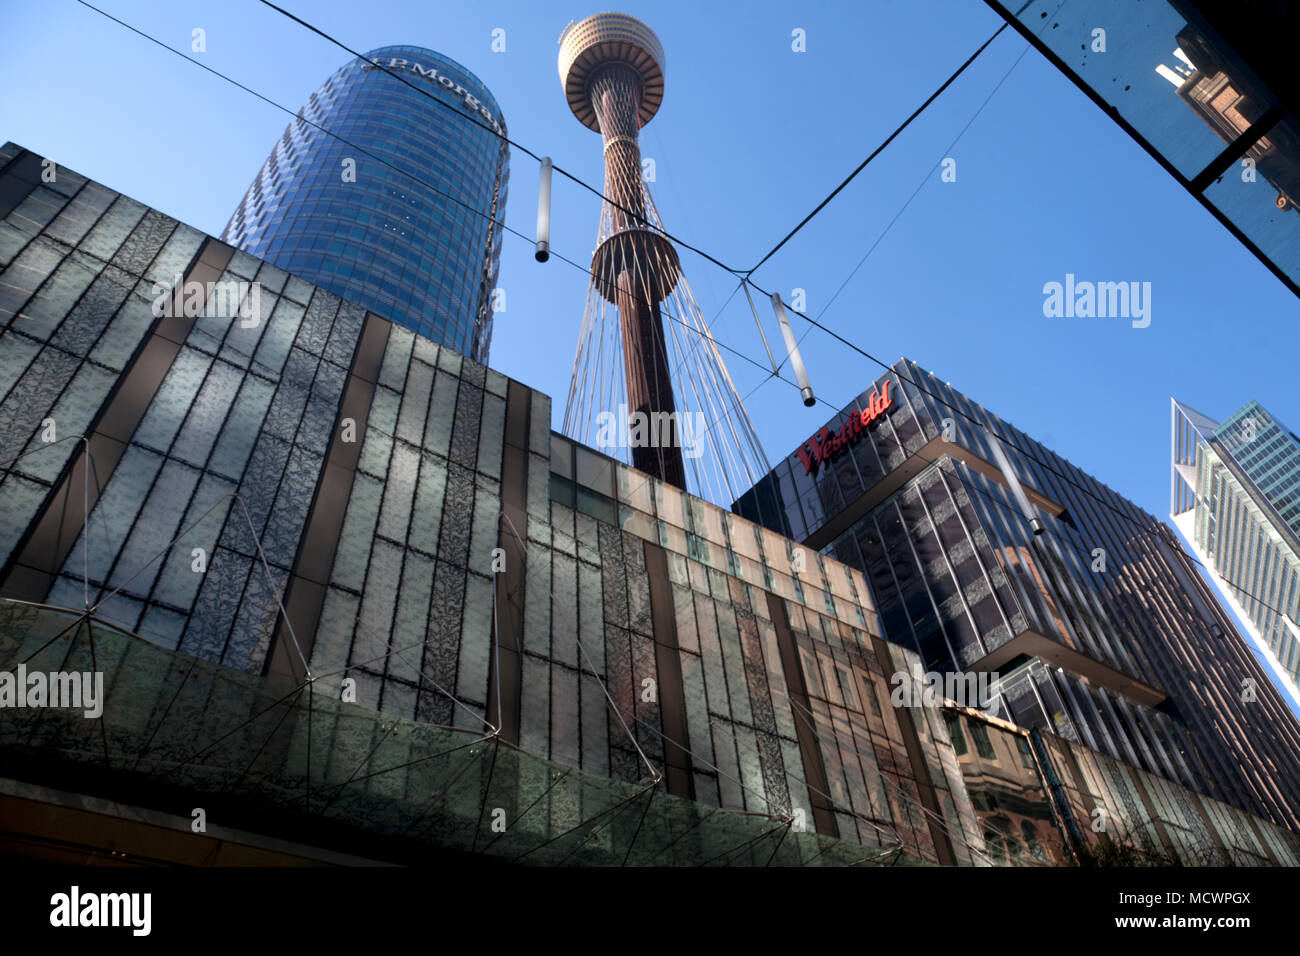 a6b3046af81 sydney tower pitt street central business district sydney new south wales  australia - Stock Image